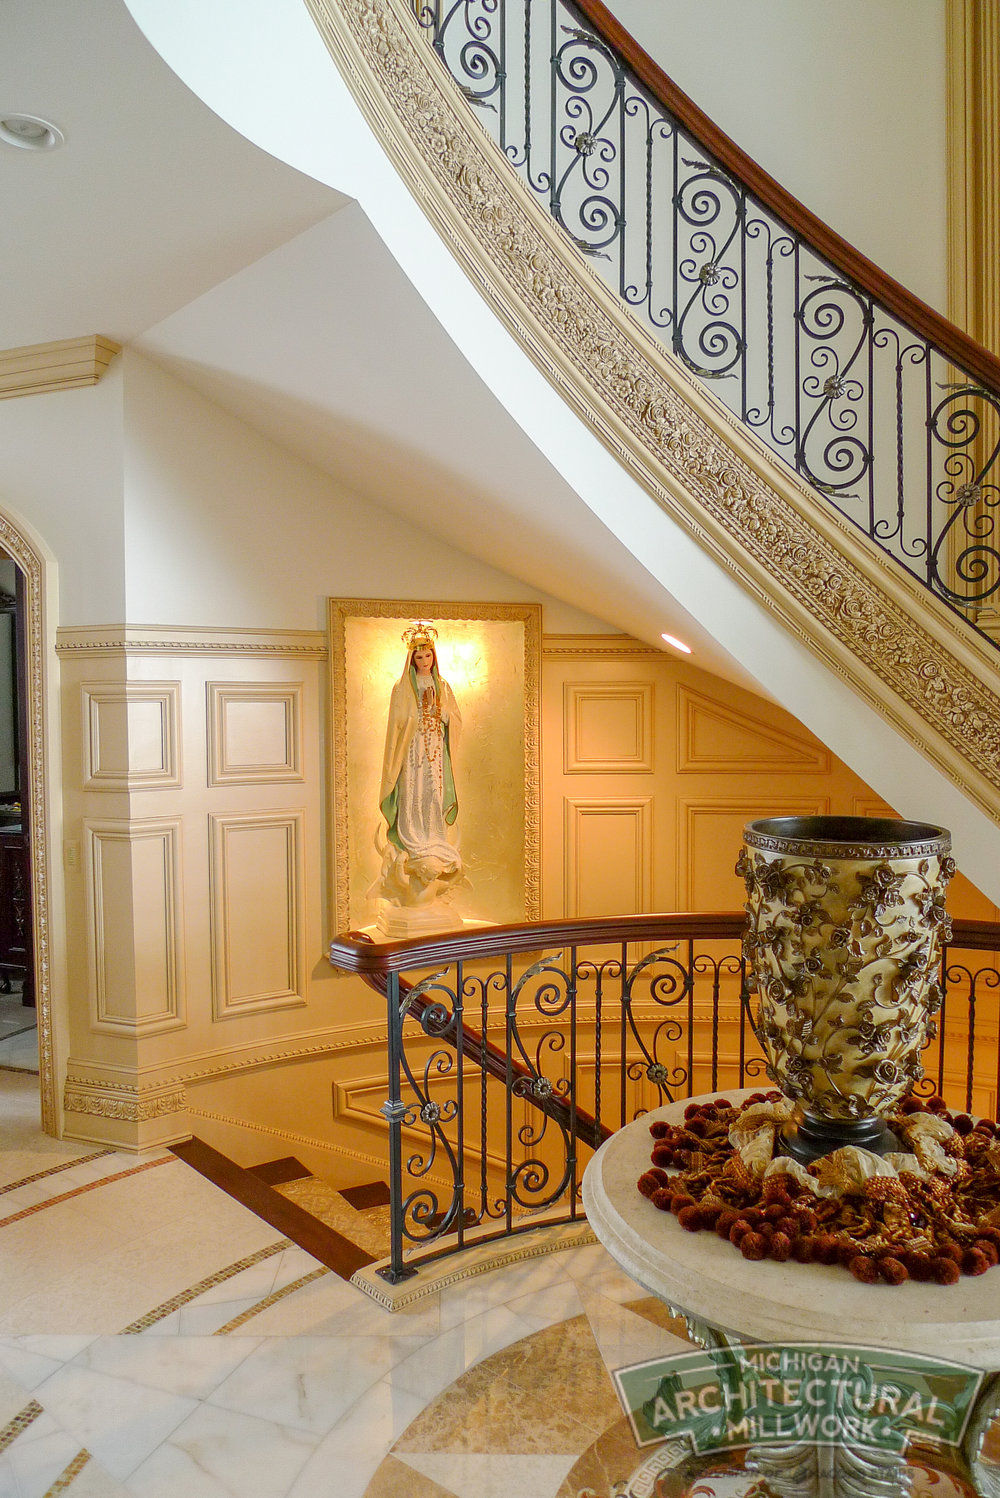 Michigan Architectural Millwork- Moulding and Millwork Photo-139.jpg